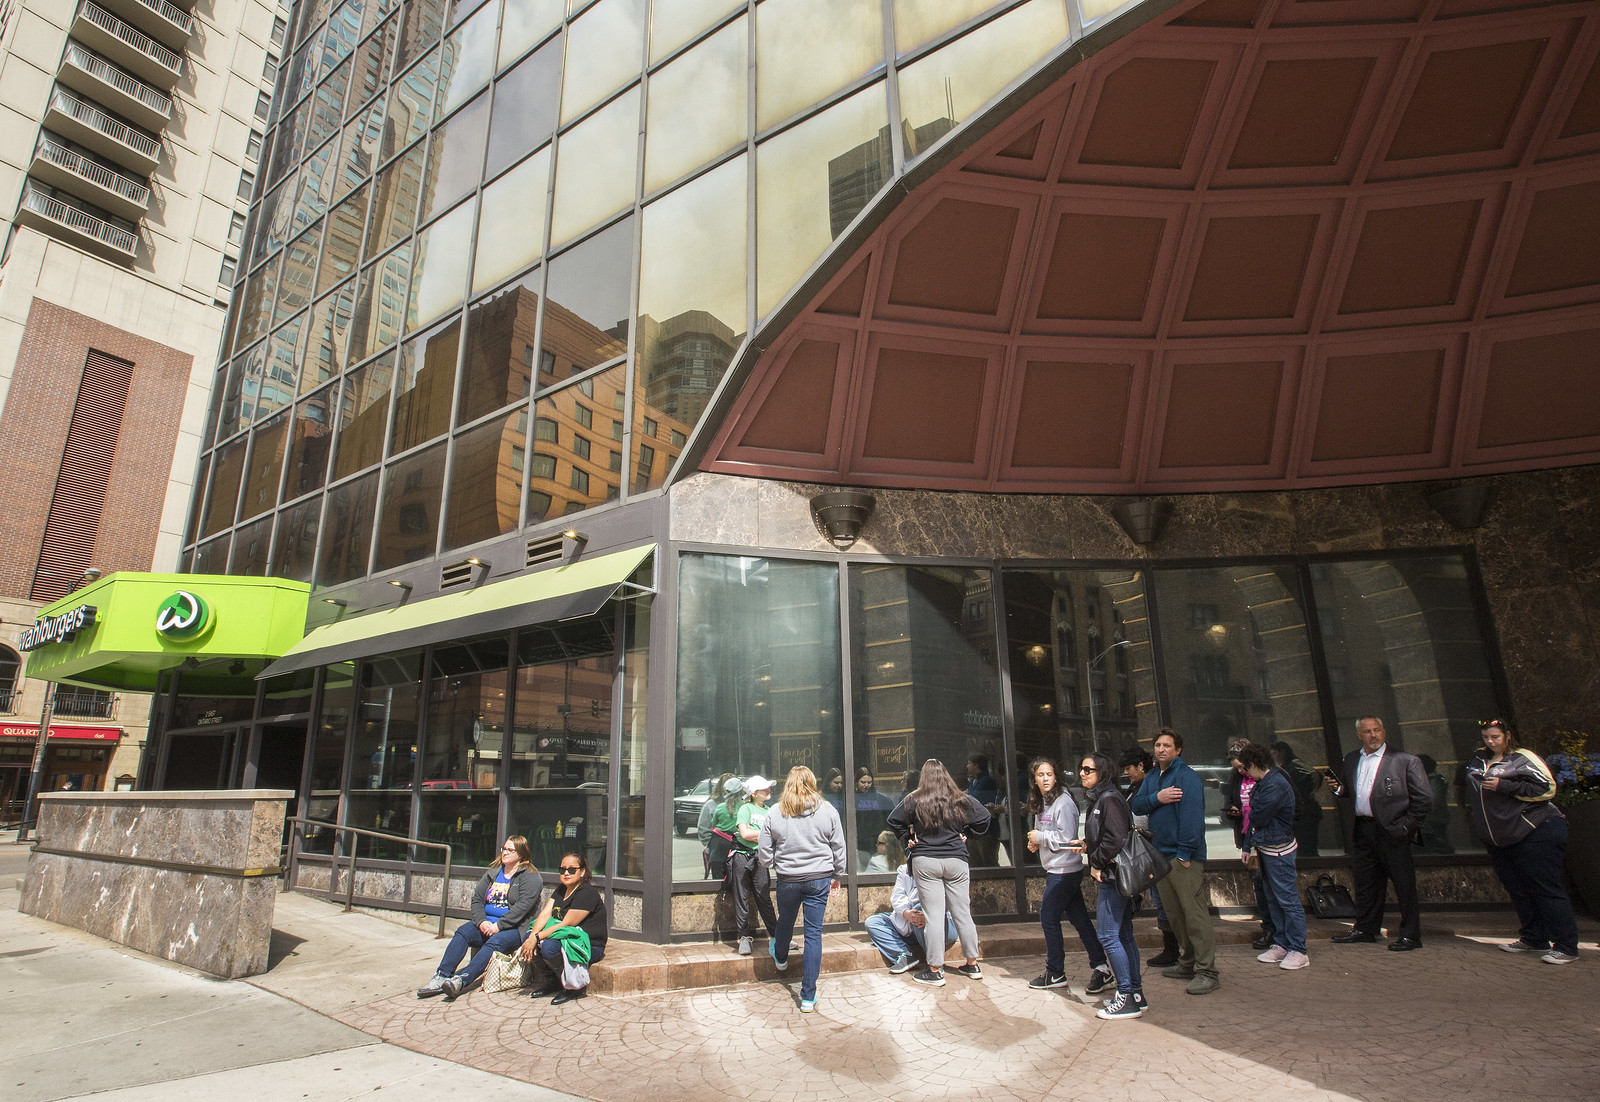 Wahlburger Fans Lined Up for Opening of Wahlberg Family's First Chicago Restaurant